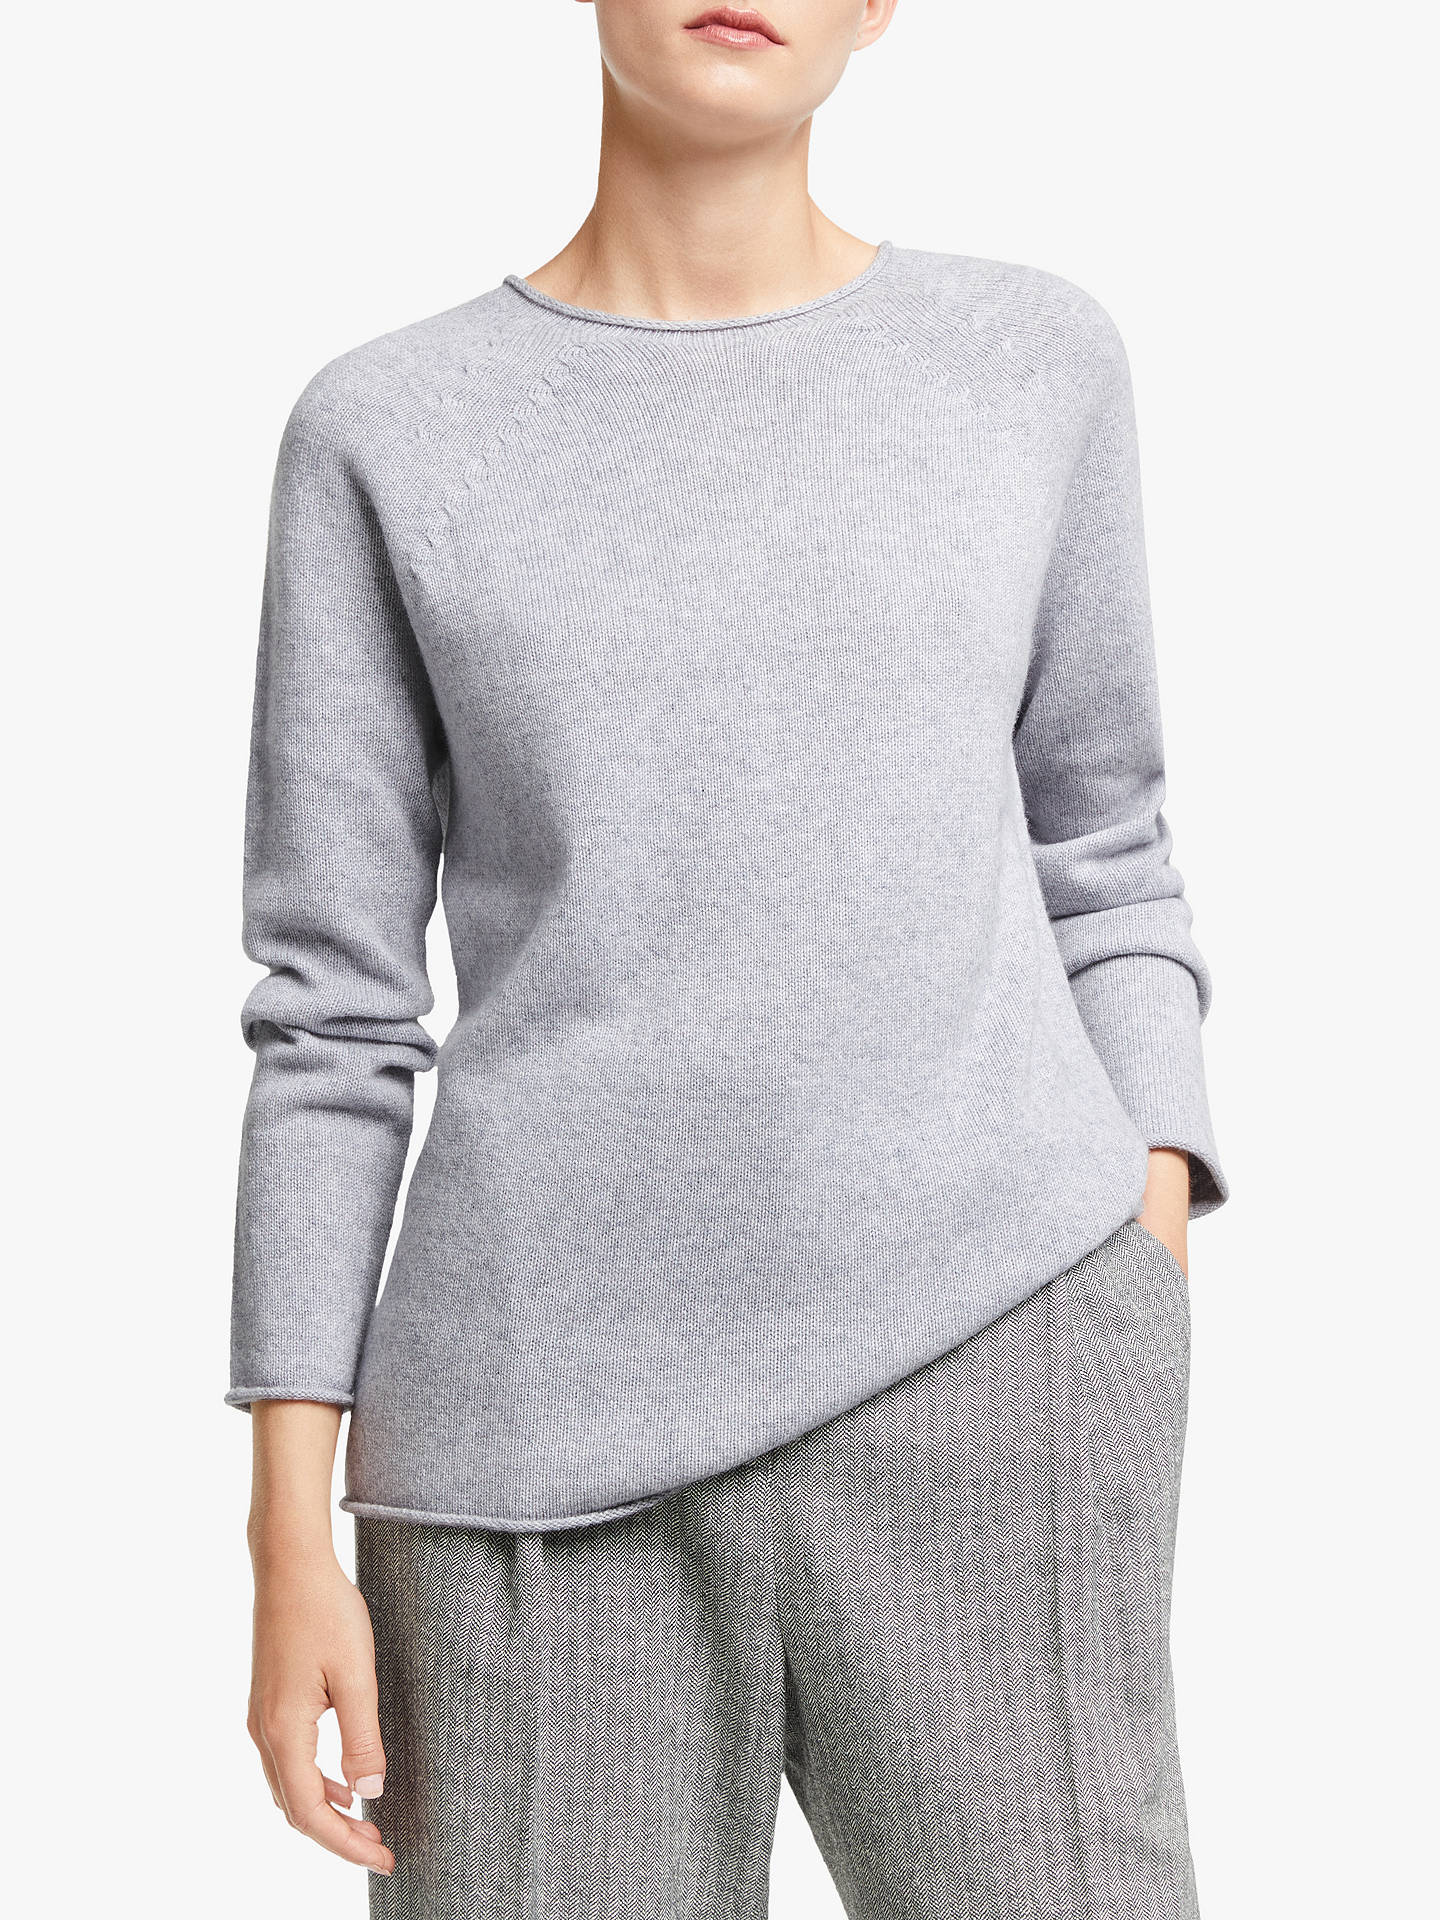 Buy John Lewis & Partners Cashmere Crew Neck Sweater, Pale Grey, 8 Online at johnlewis.com